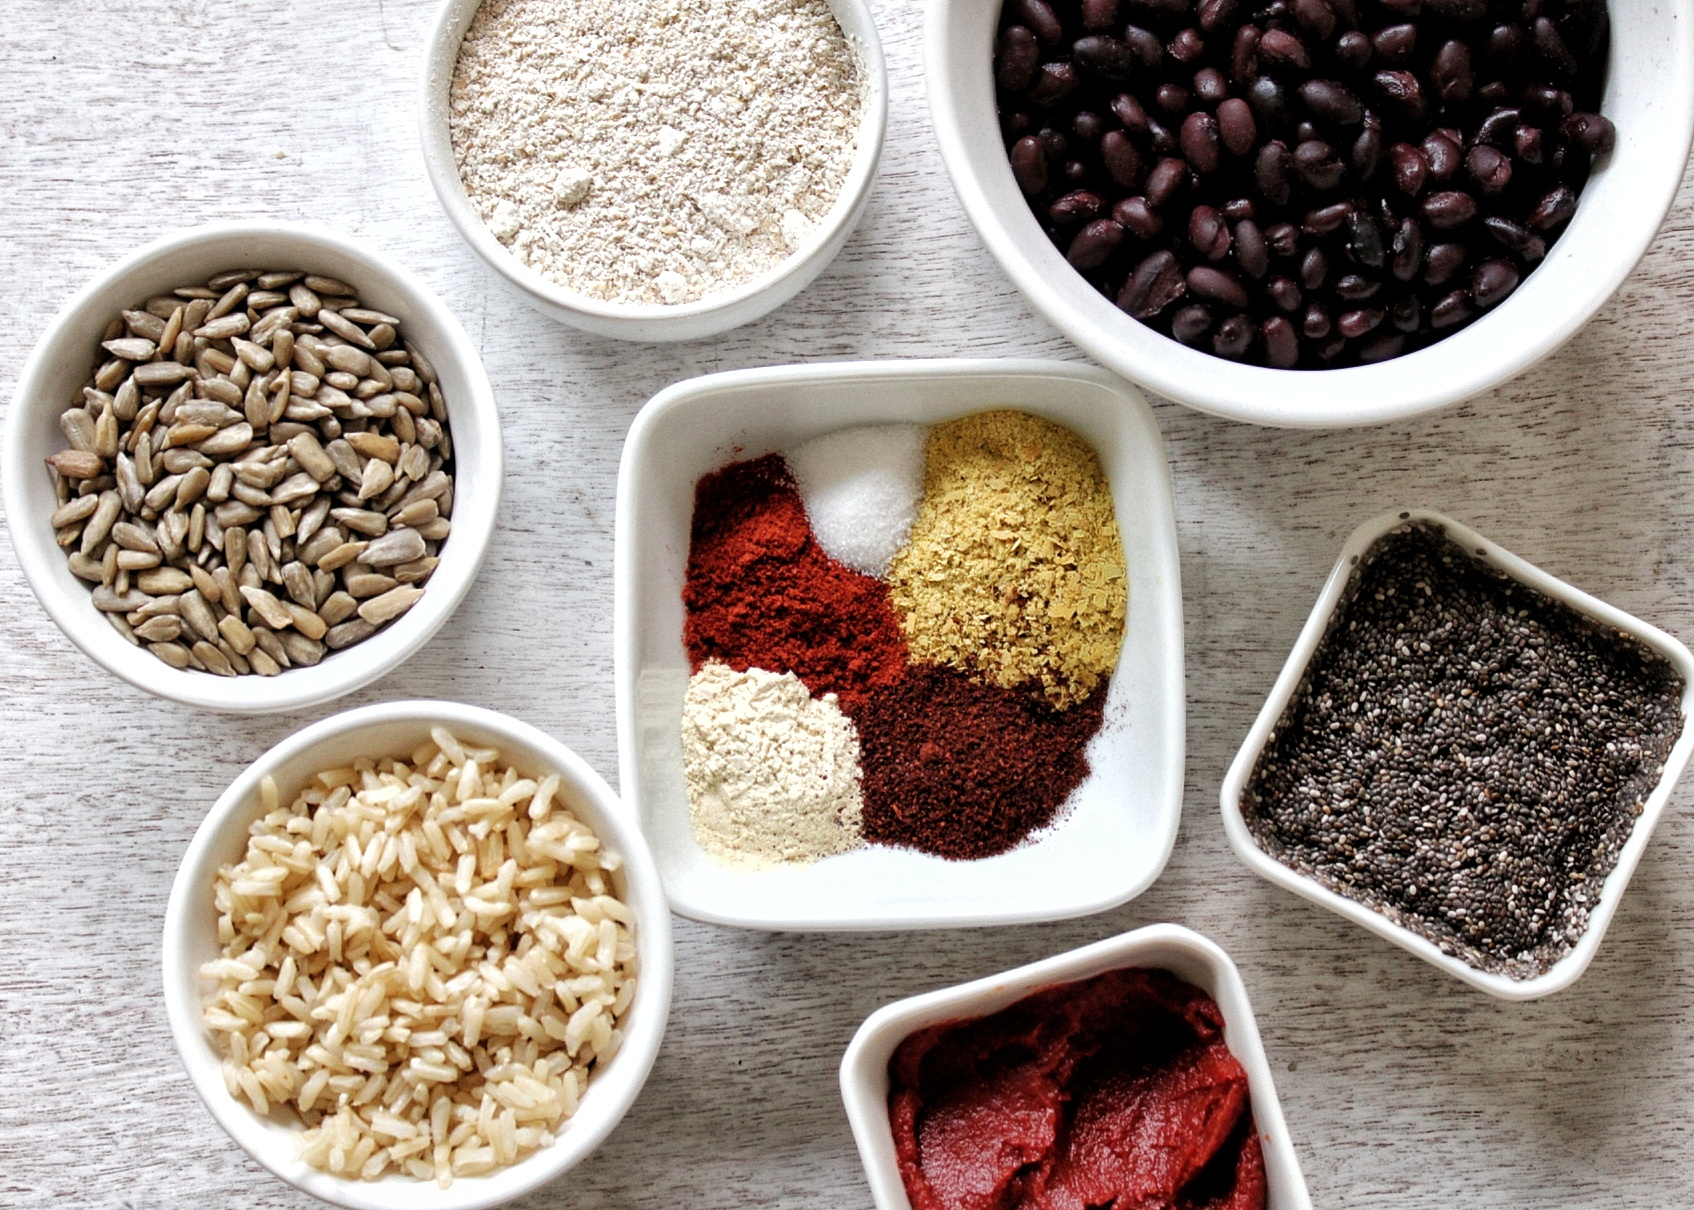 Black beans, oat flour, sunflower seeds, brown rice, tomato paste, chia seeds, and spices